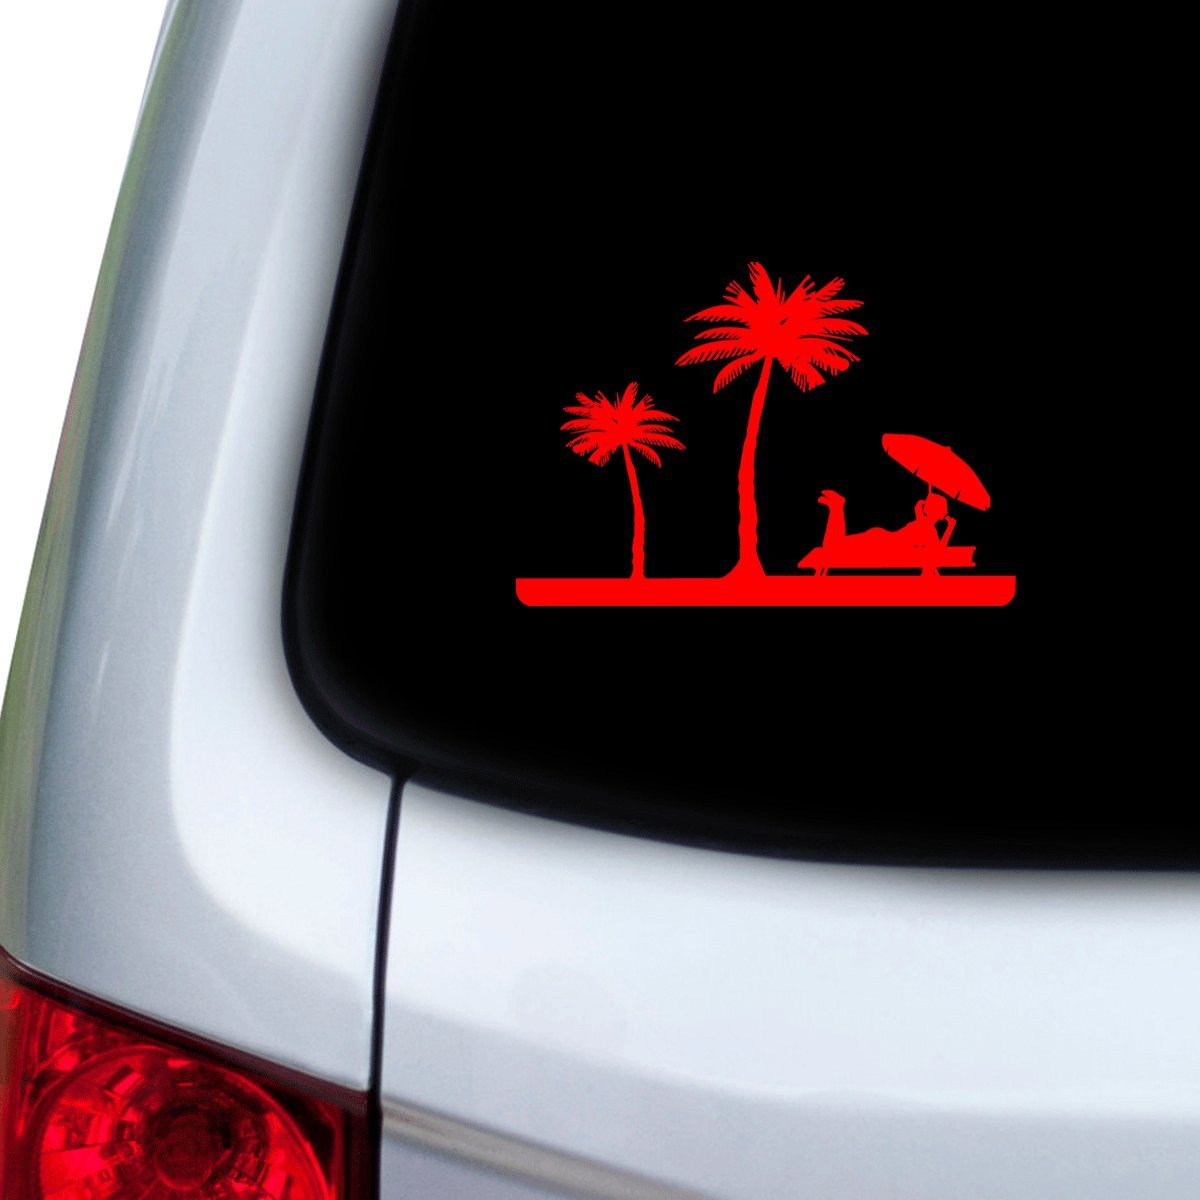 Doors StickAny Car and Auto Decal Series Girl Relaxing Beach Sticker for Windows Hoods Red